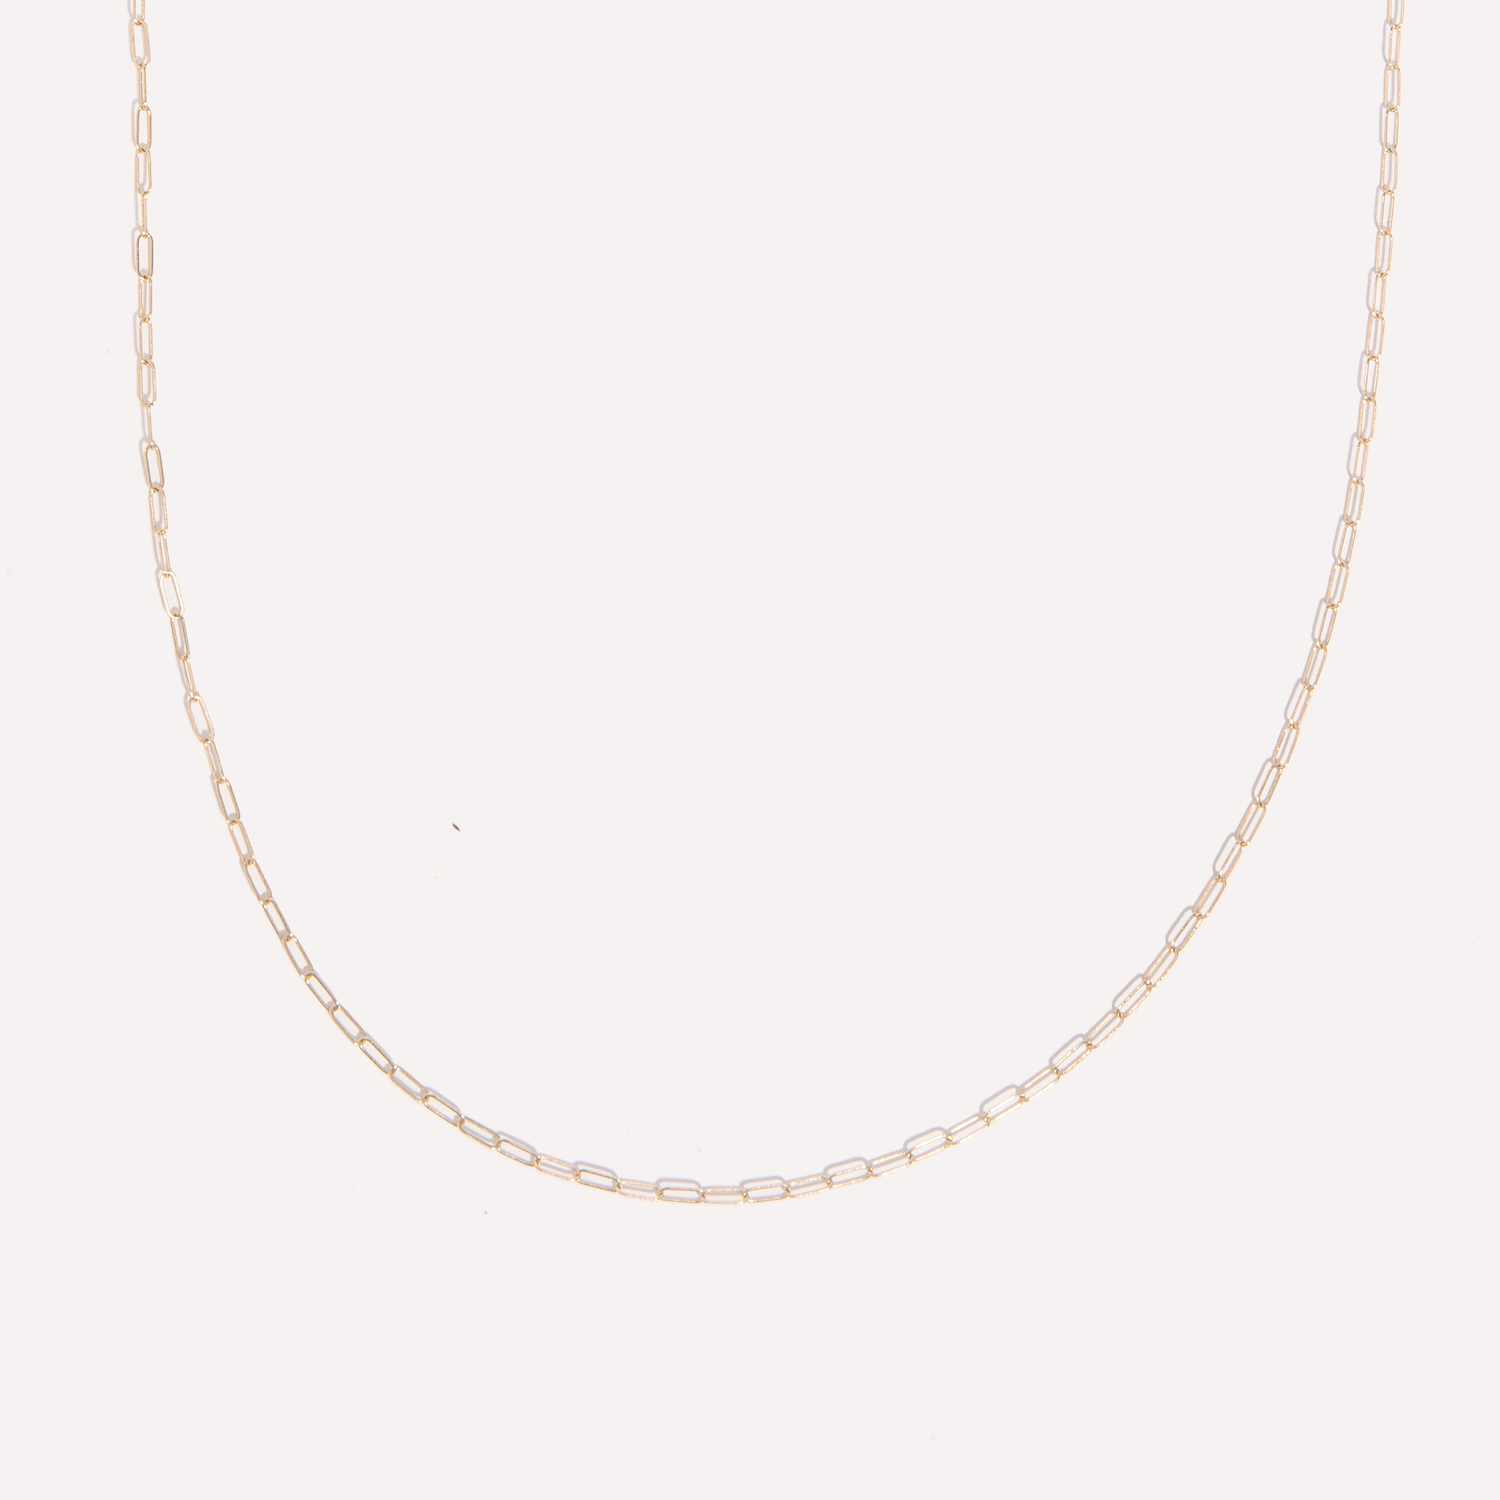 callie chain in 14k gold.